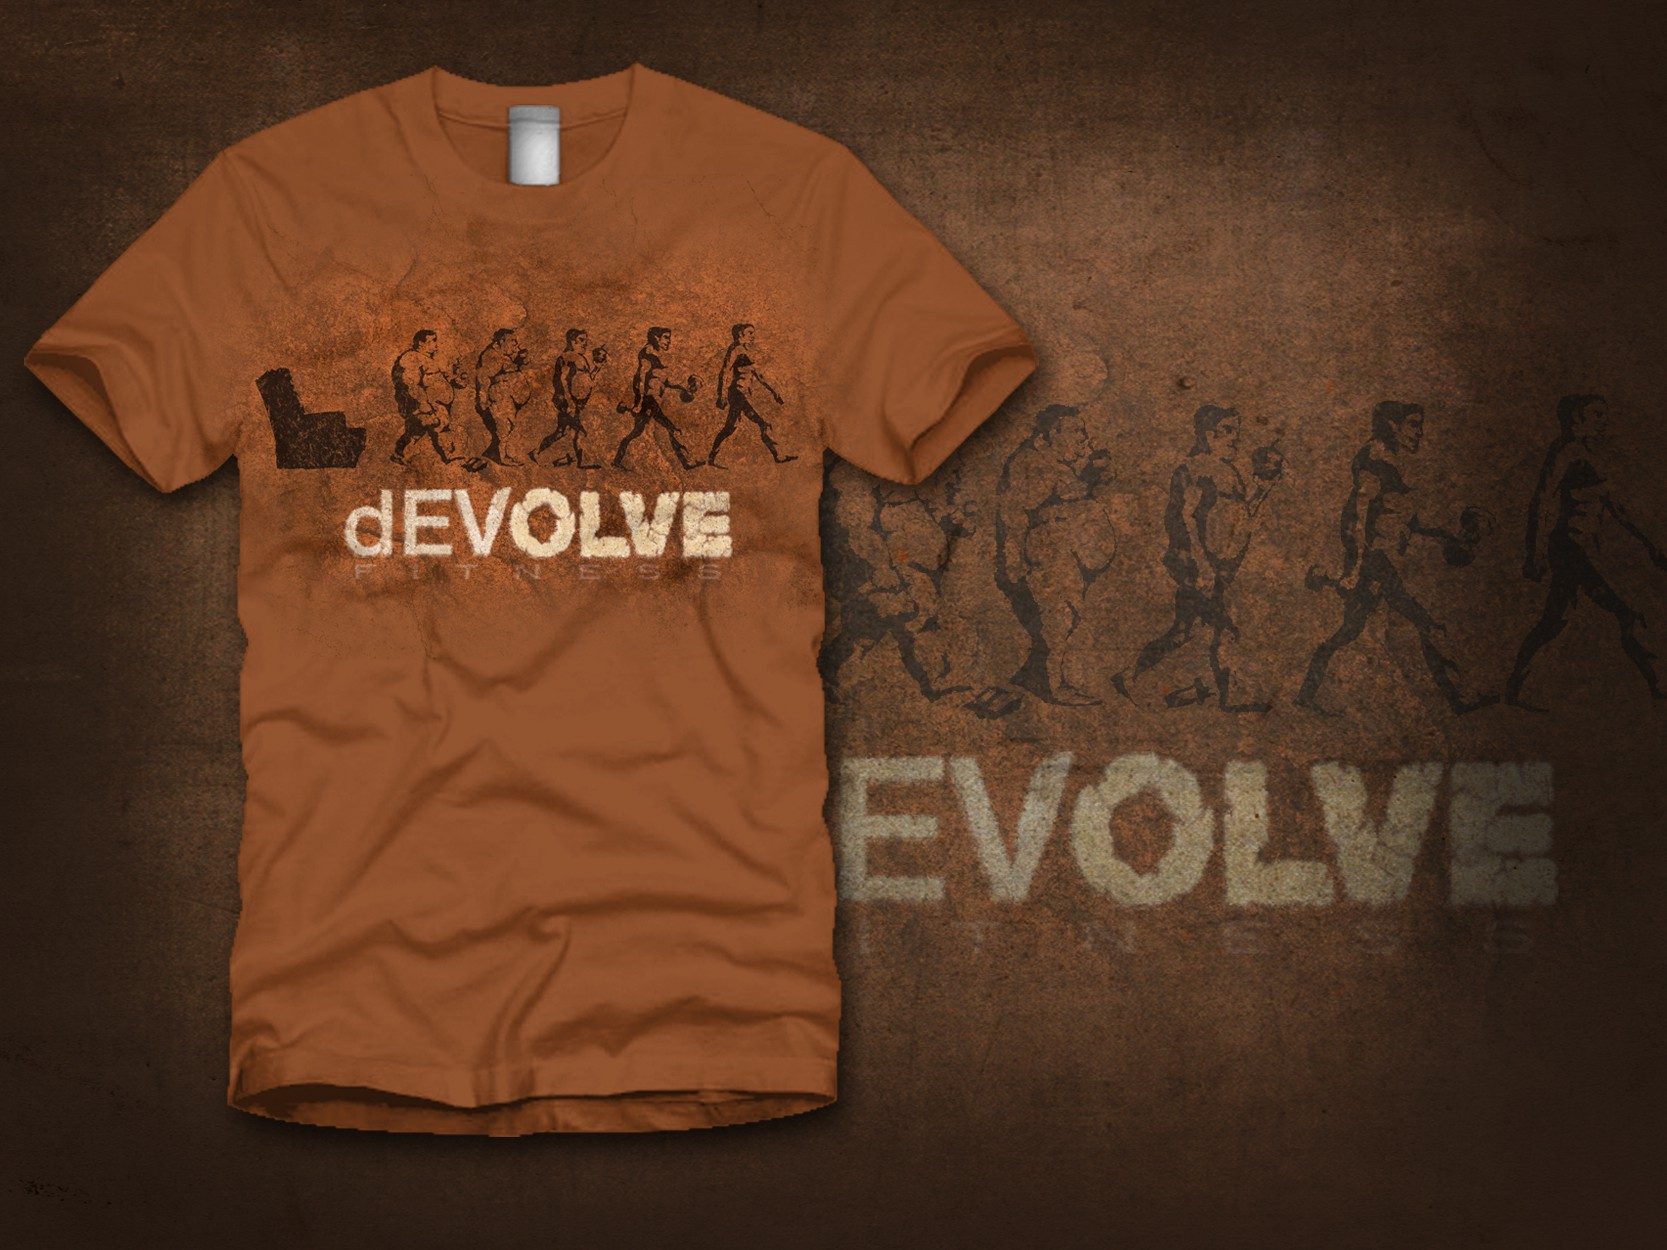 dEVOLVE FITNESS needs a new clothing or merchandise design